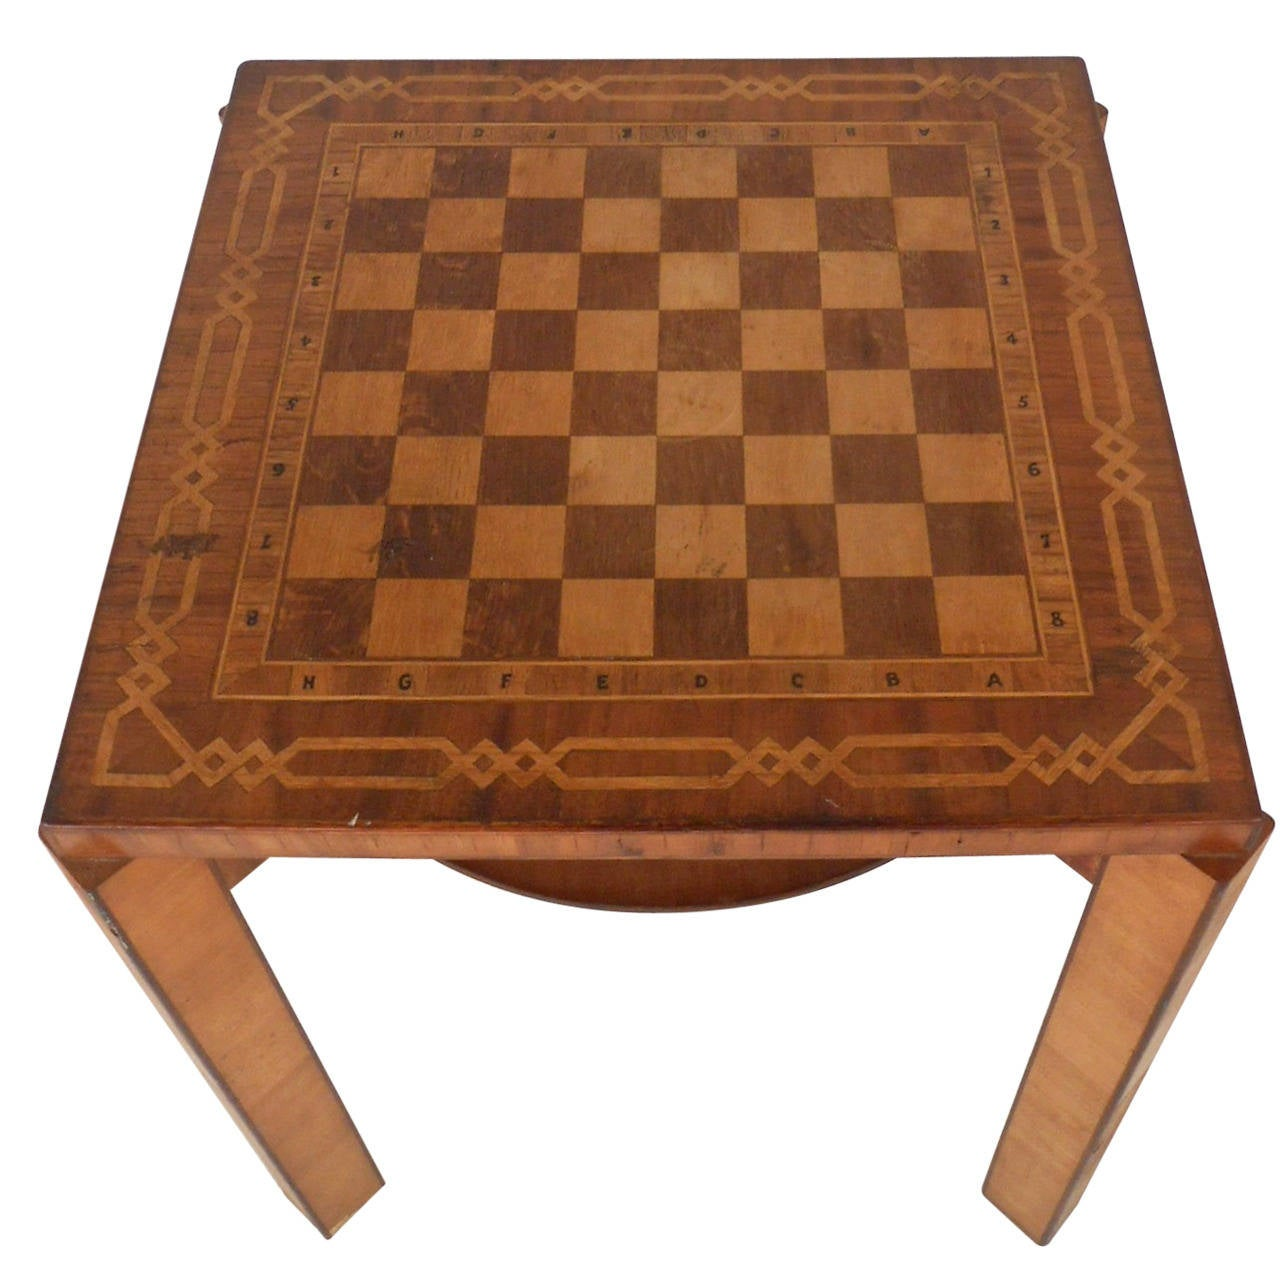 Unique Vintage Decorative Inlay Chess & Gaming Table